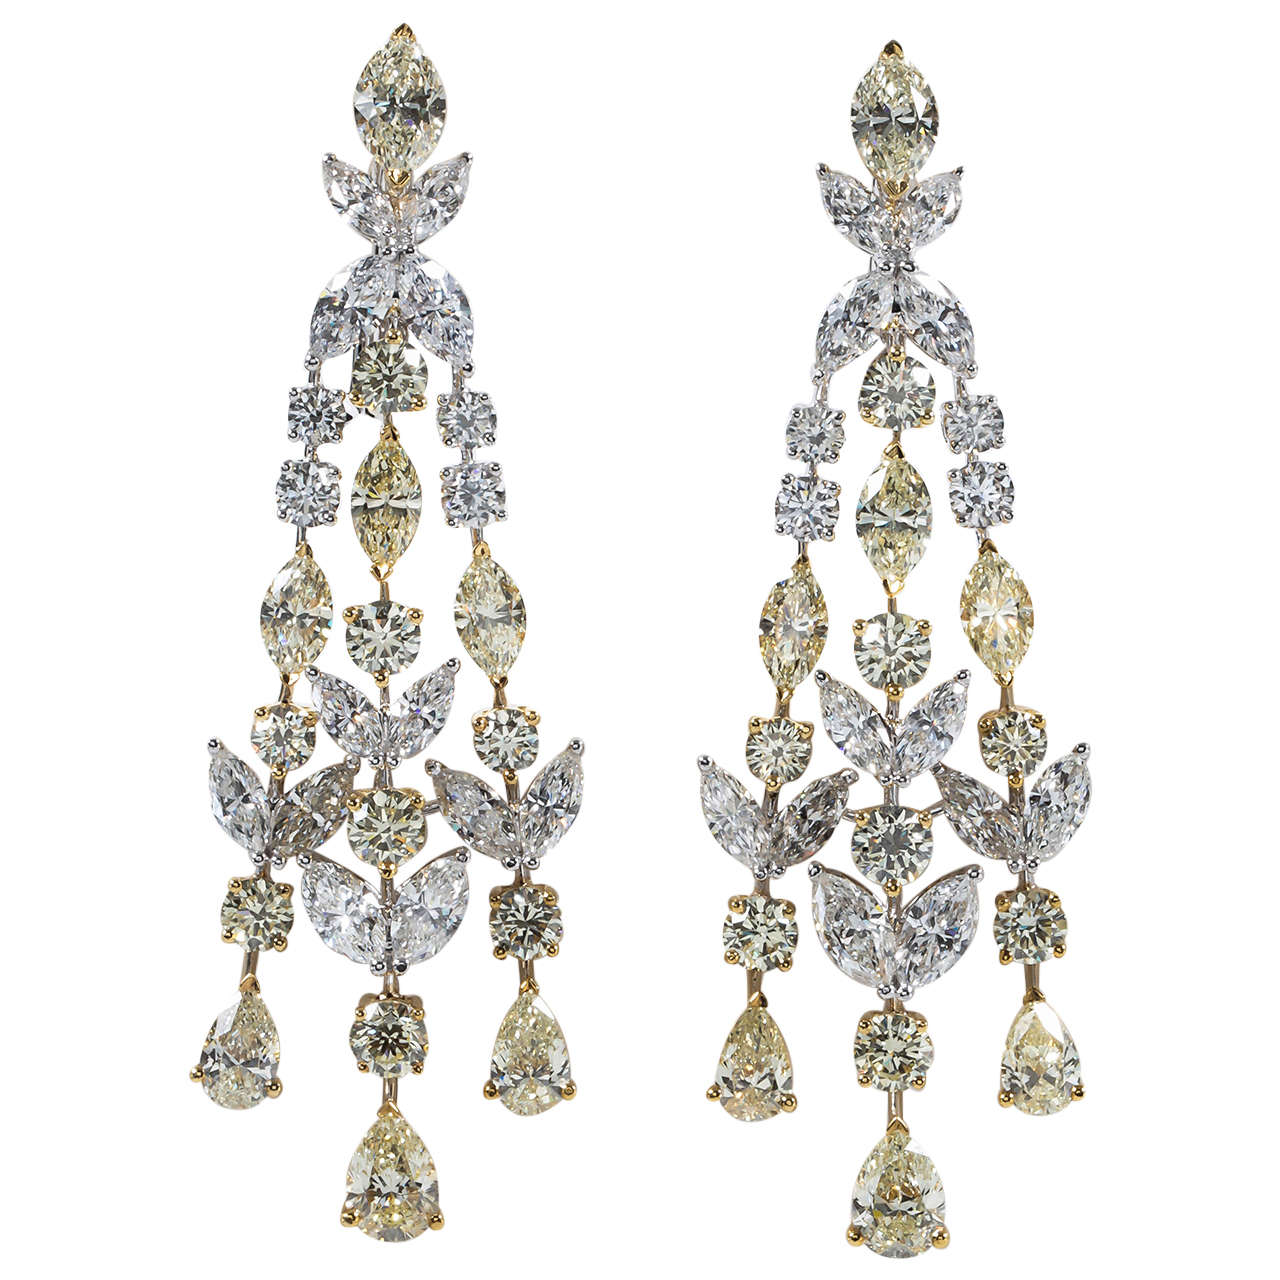 Chandelier Earrings TopEarrings – Chandelier Earring